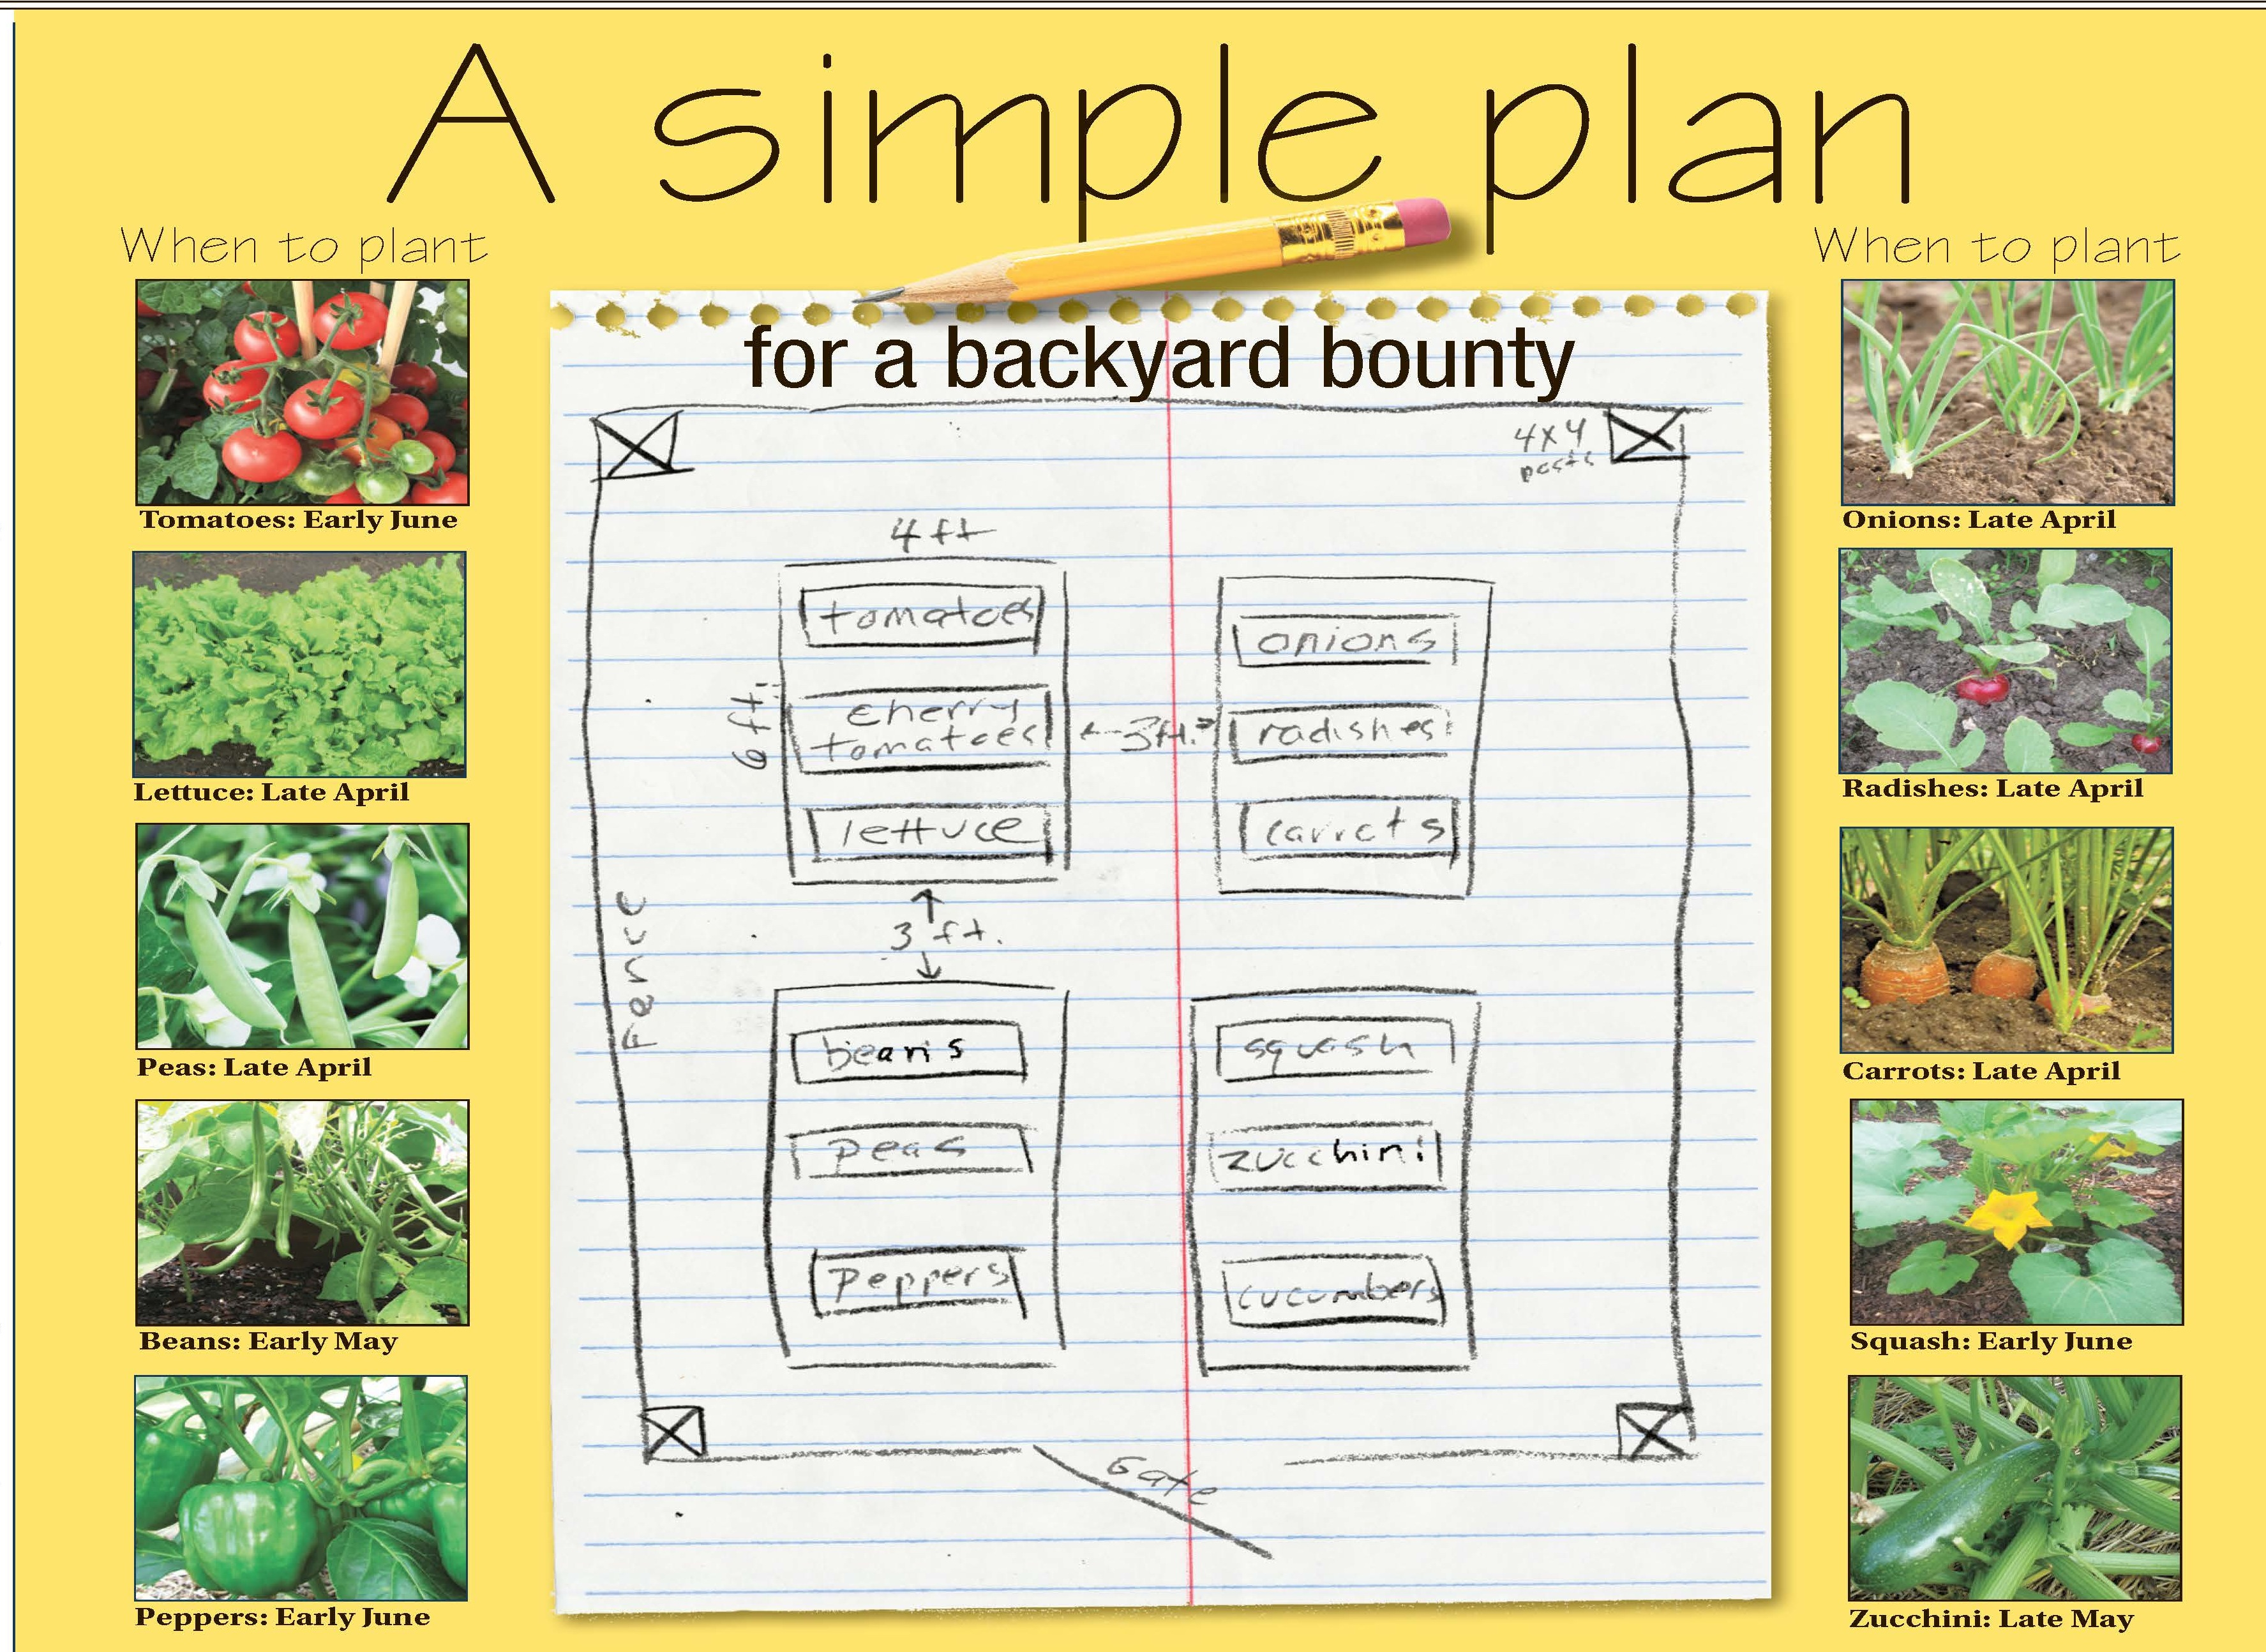 a simple plan for backyard bounty the blade